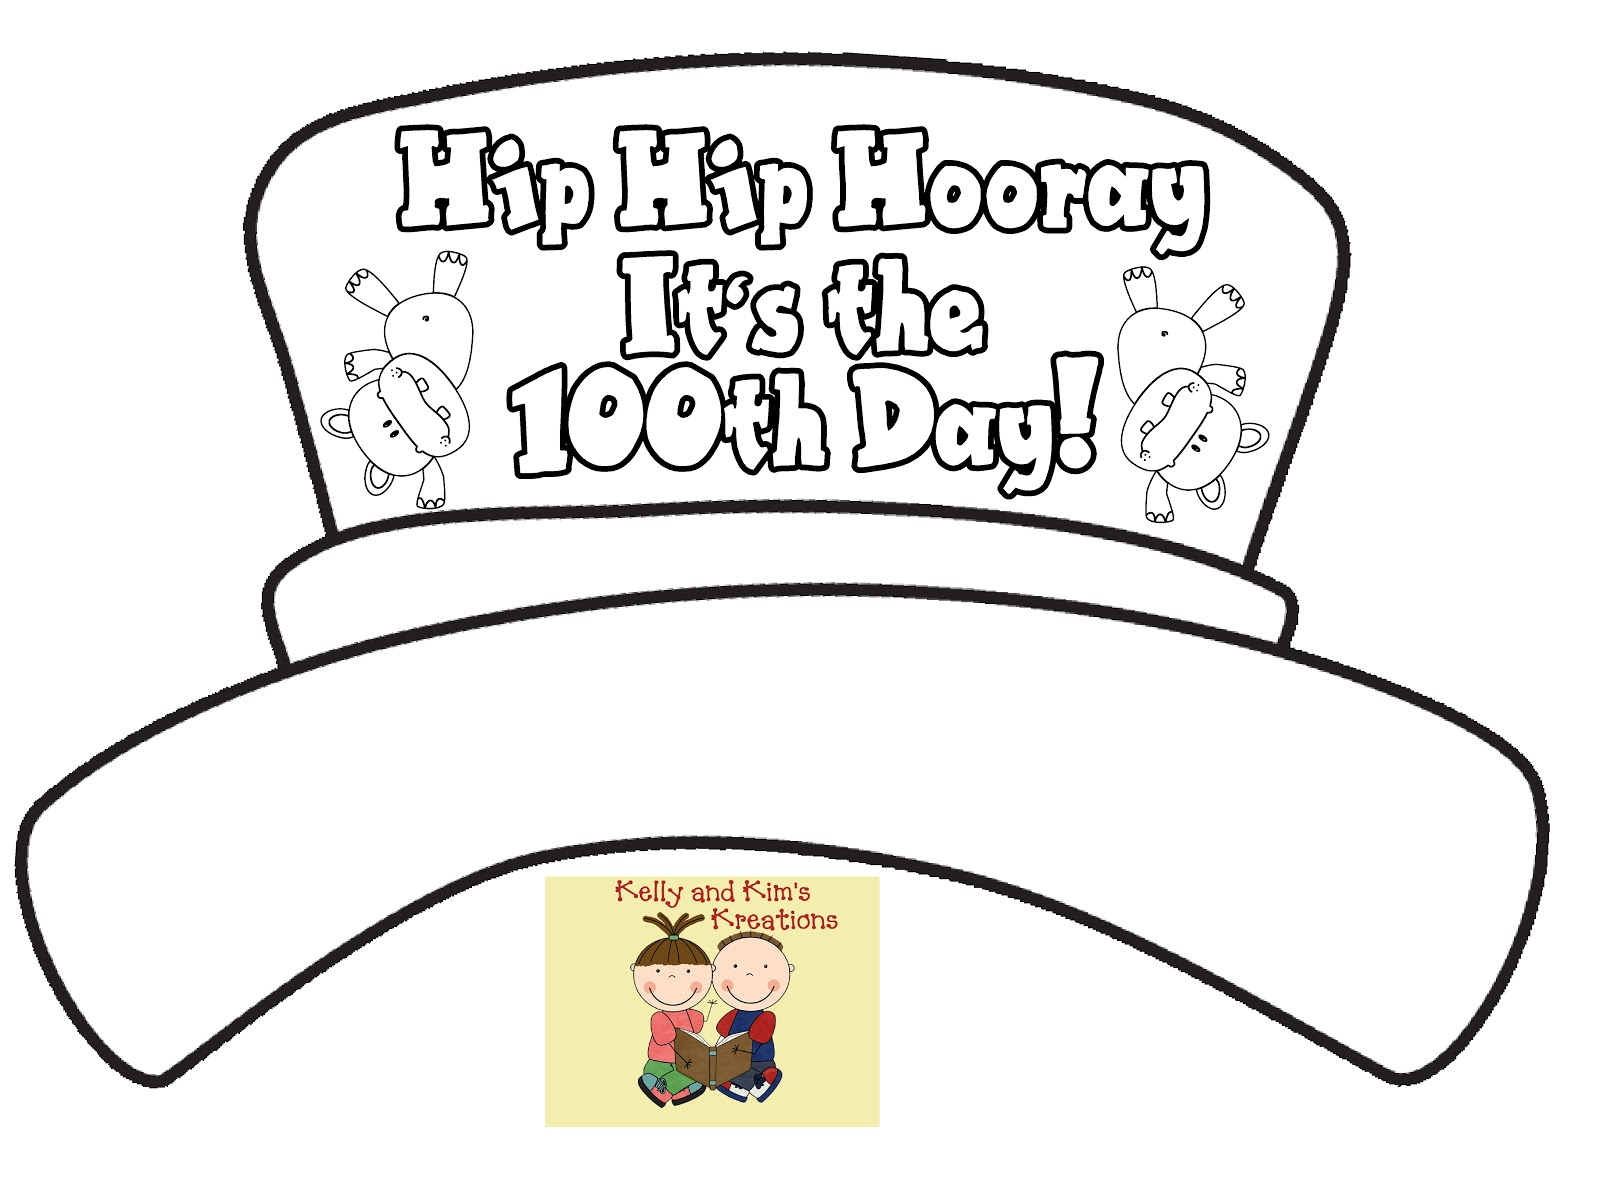 and s kreations 100th day friday freebie